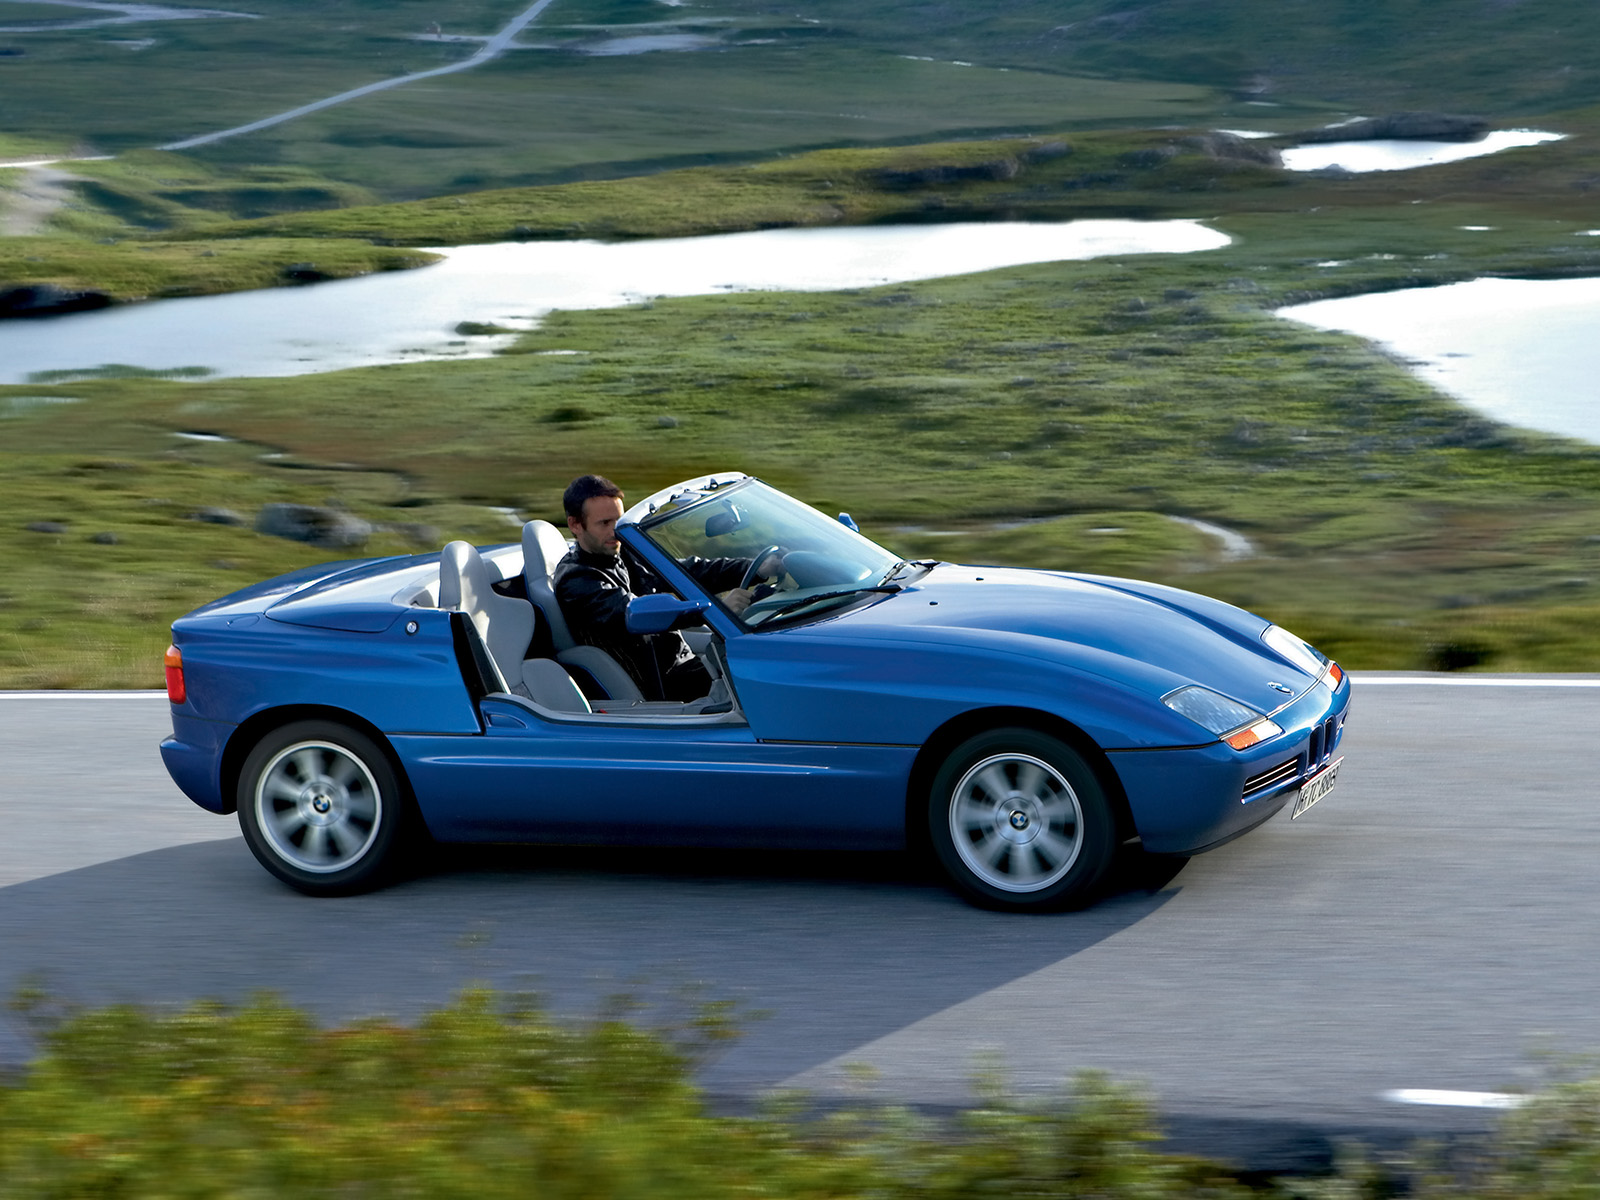 Bmw Z1 Photos Photogallery With 13 Pics Carsbase Com